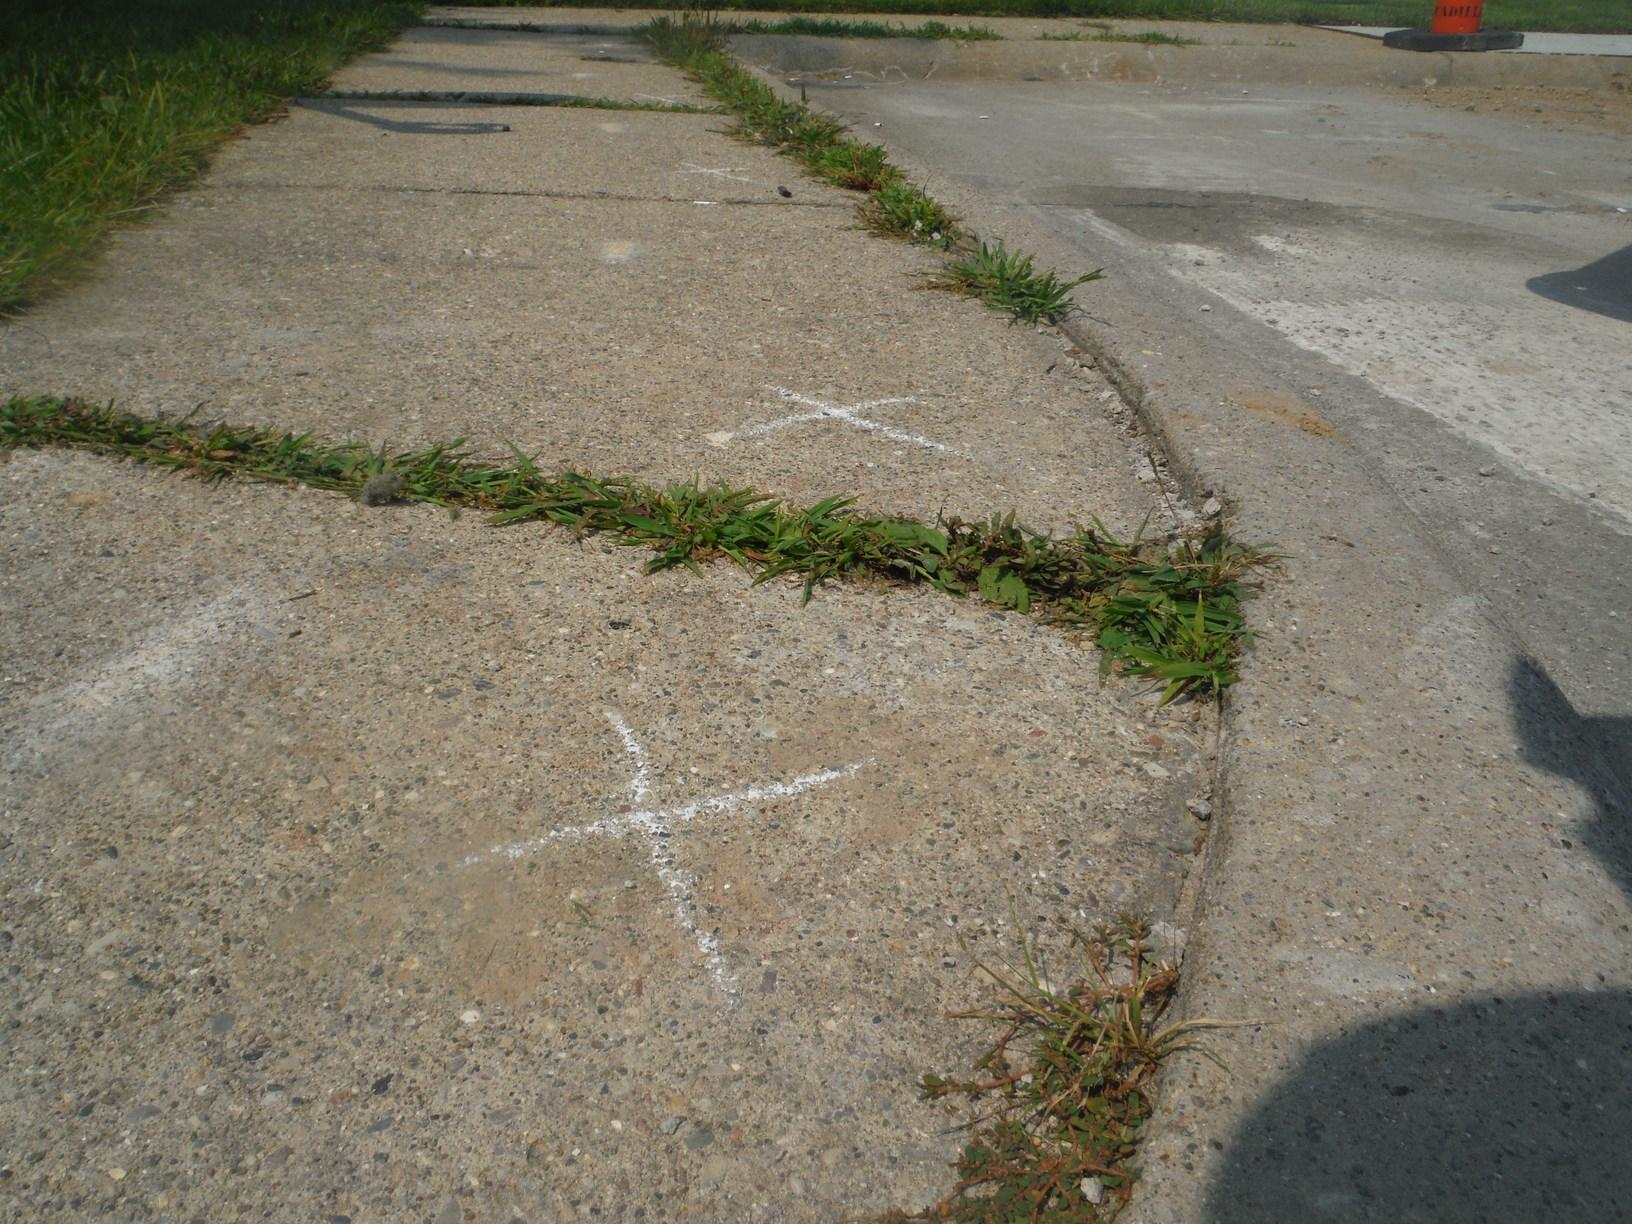 Concrete Slab on Sidewalk Lifted in Macomb, MI - Before Photo